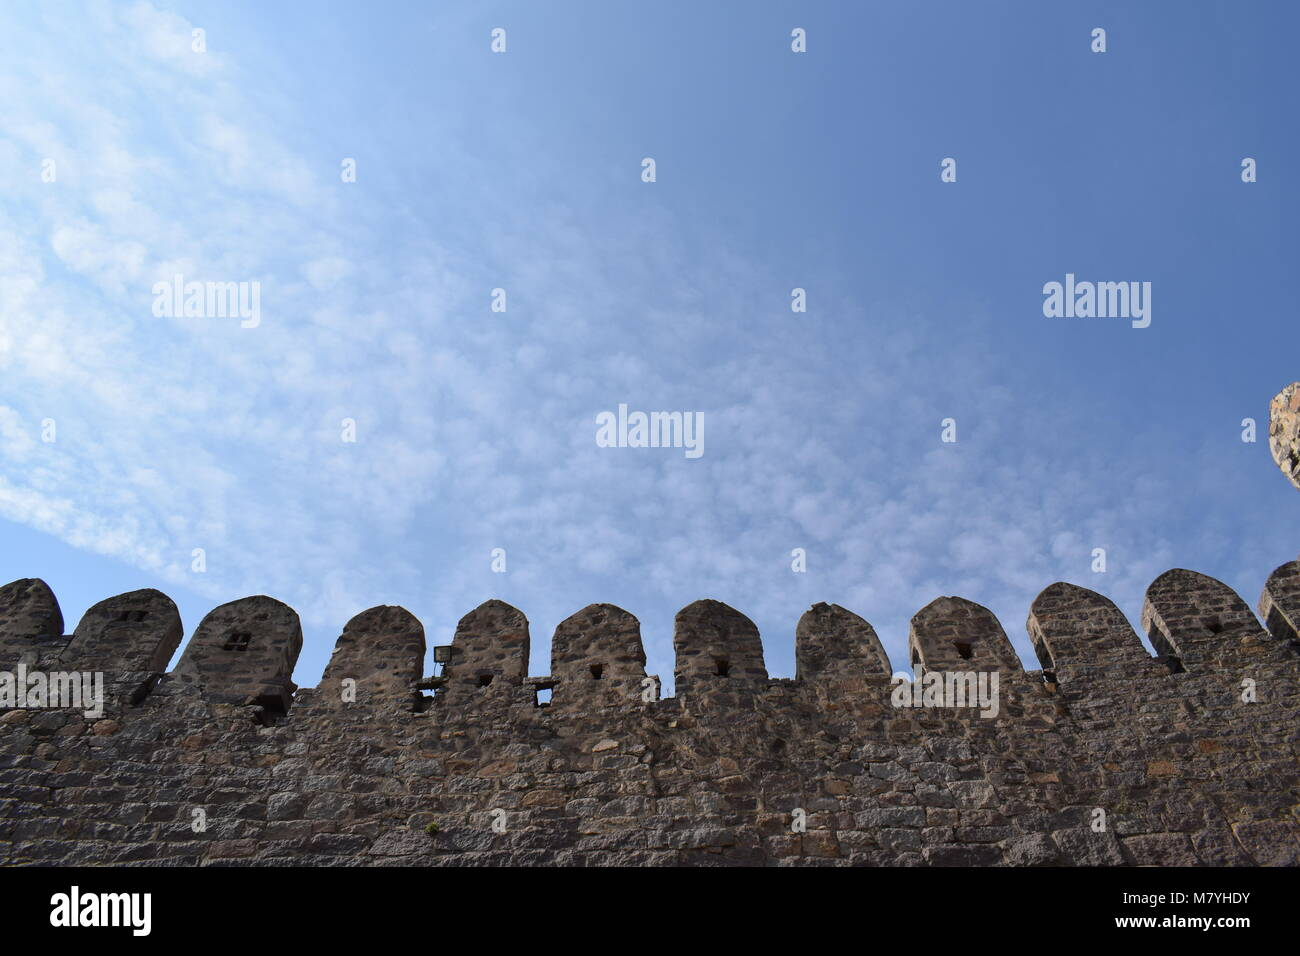 A part of the golconda fort and blue sky - Stock Image